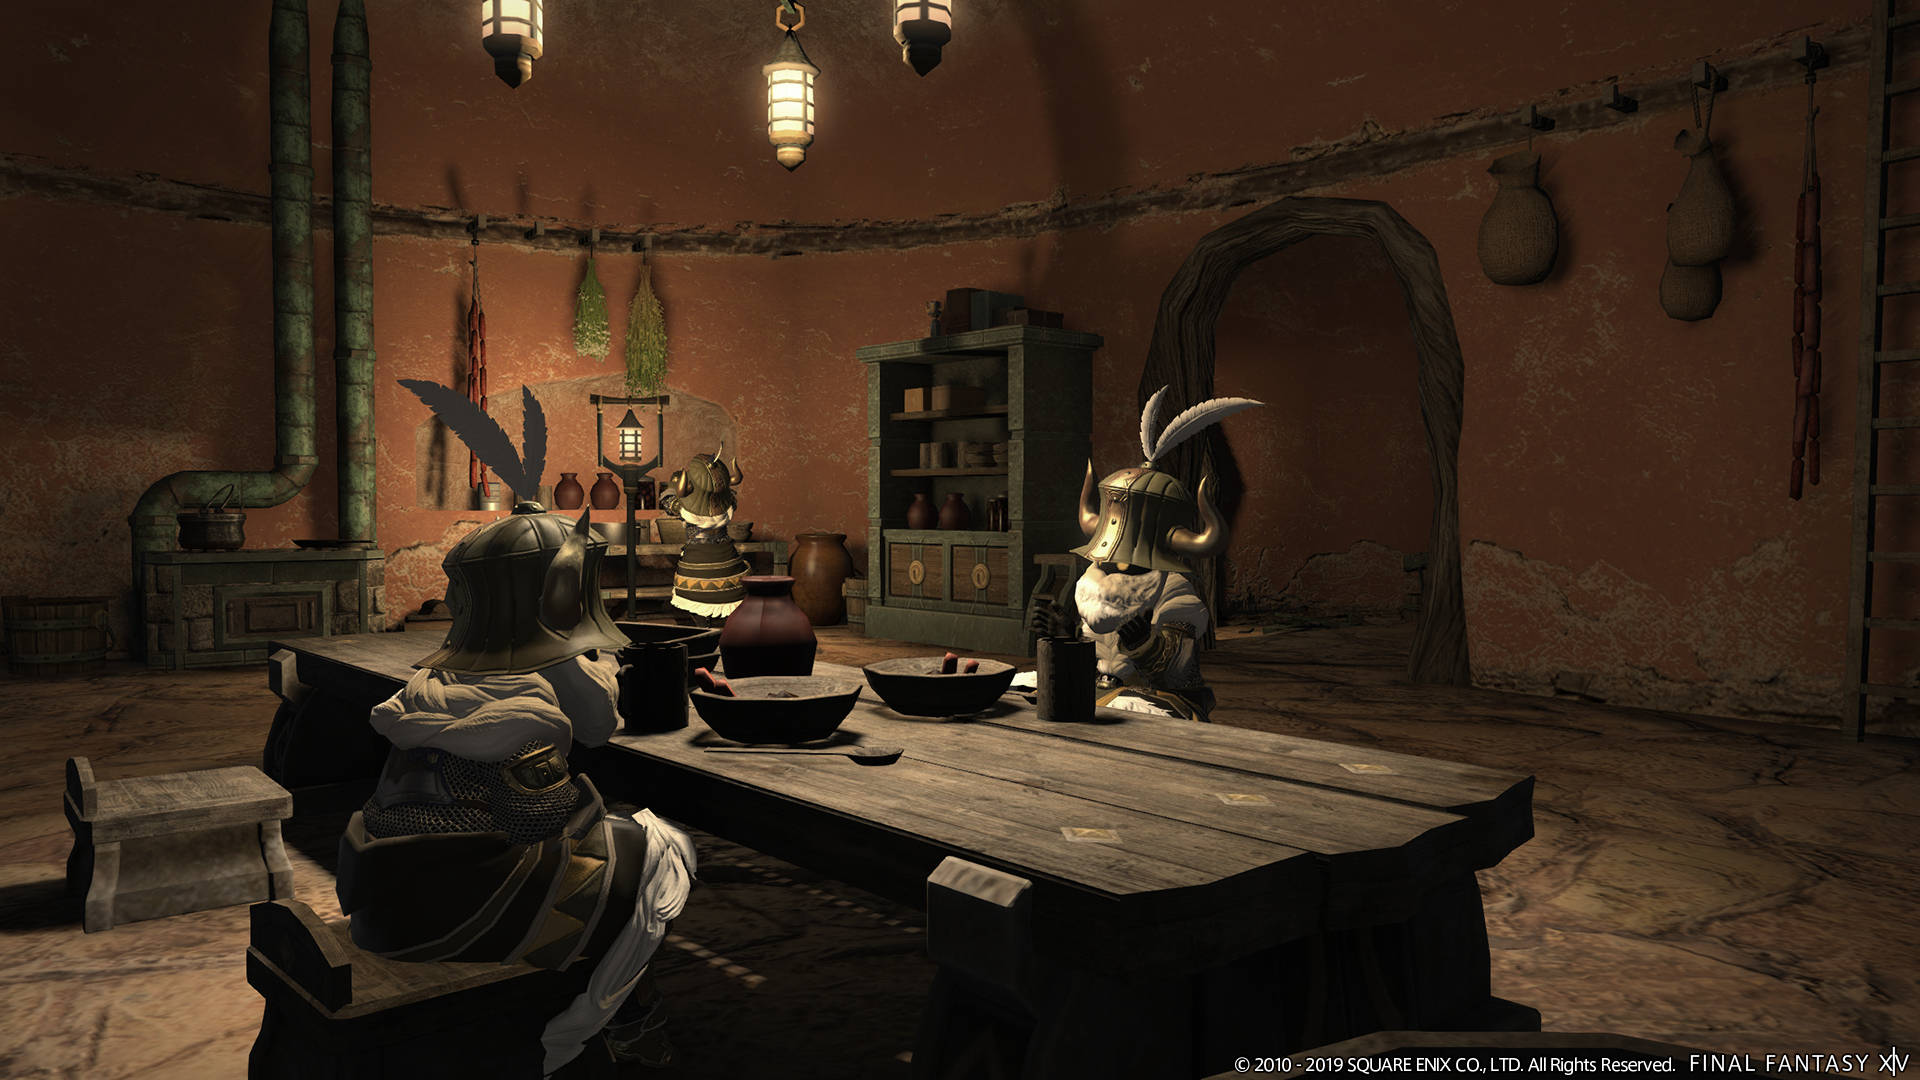 Final Fantasy XIV: Shadowbringers Heads to The First, Dancer Job and